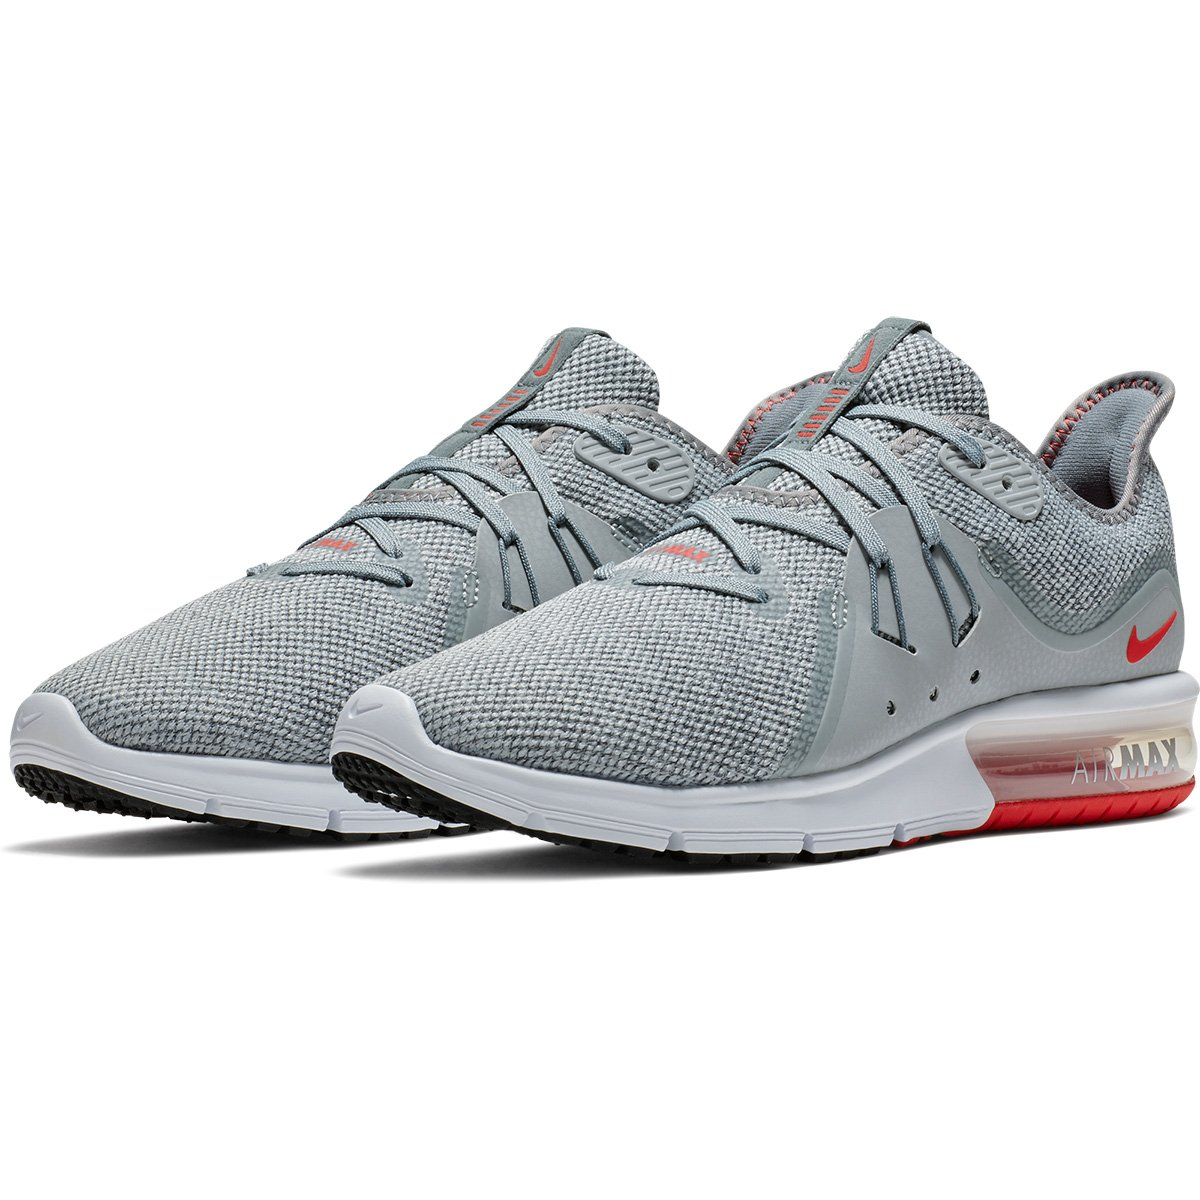 71bc1ddd6 Tênis Nike Air Max Sequent 3 Masculino. undefined